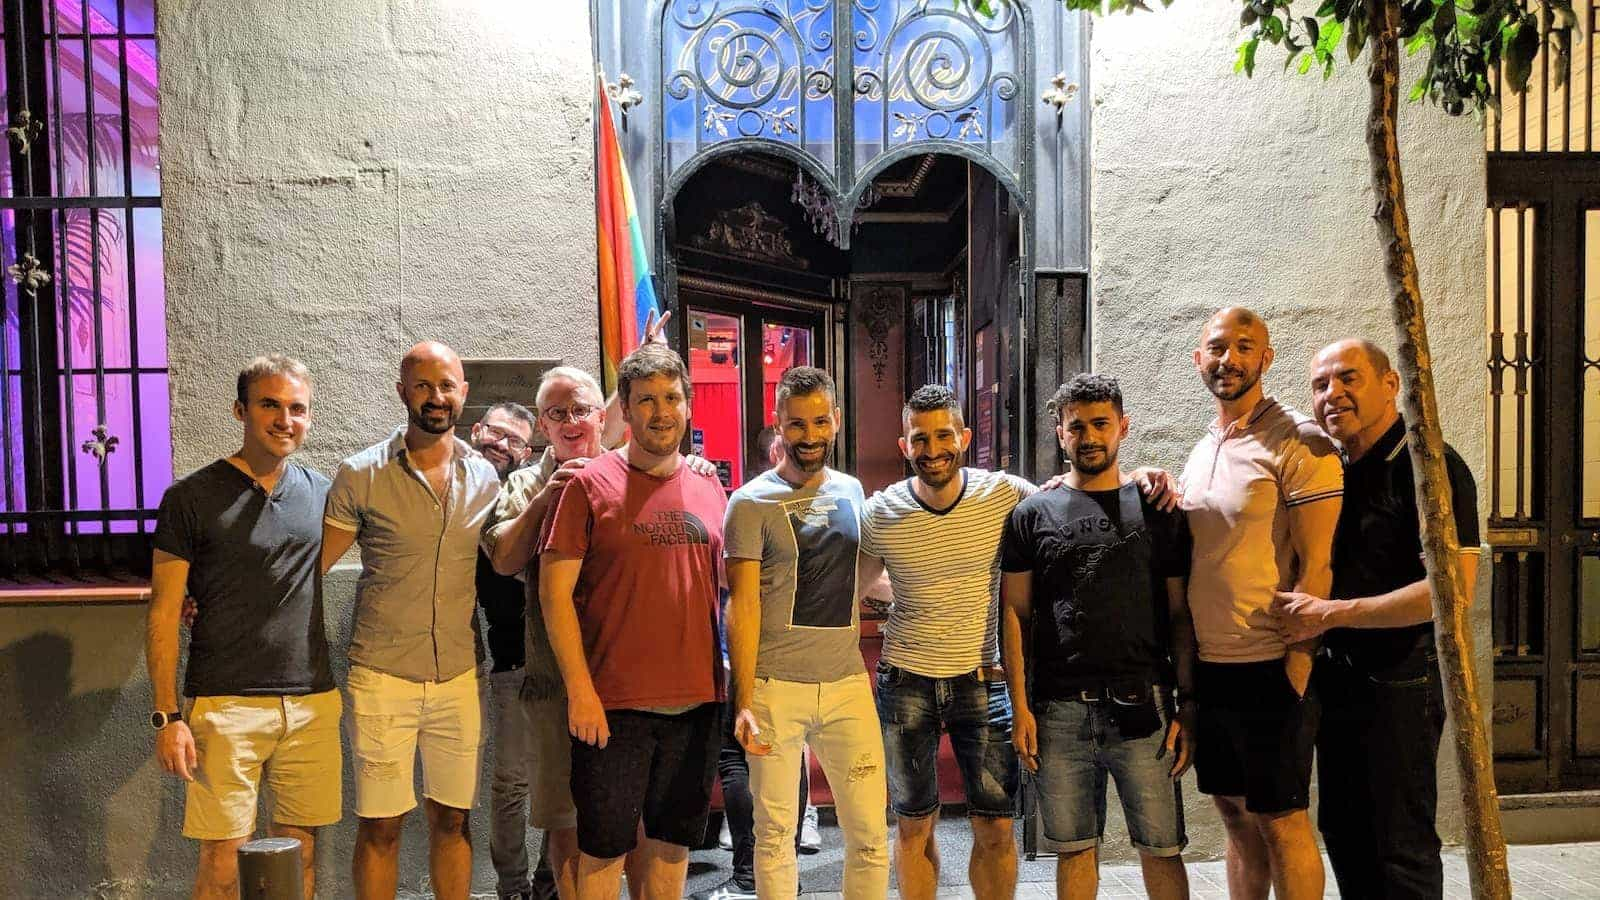 Versailles gay bar Barcelona drinks with friends